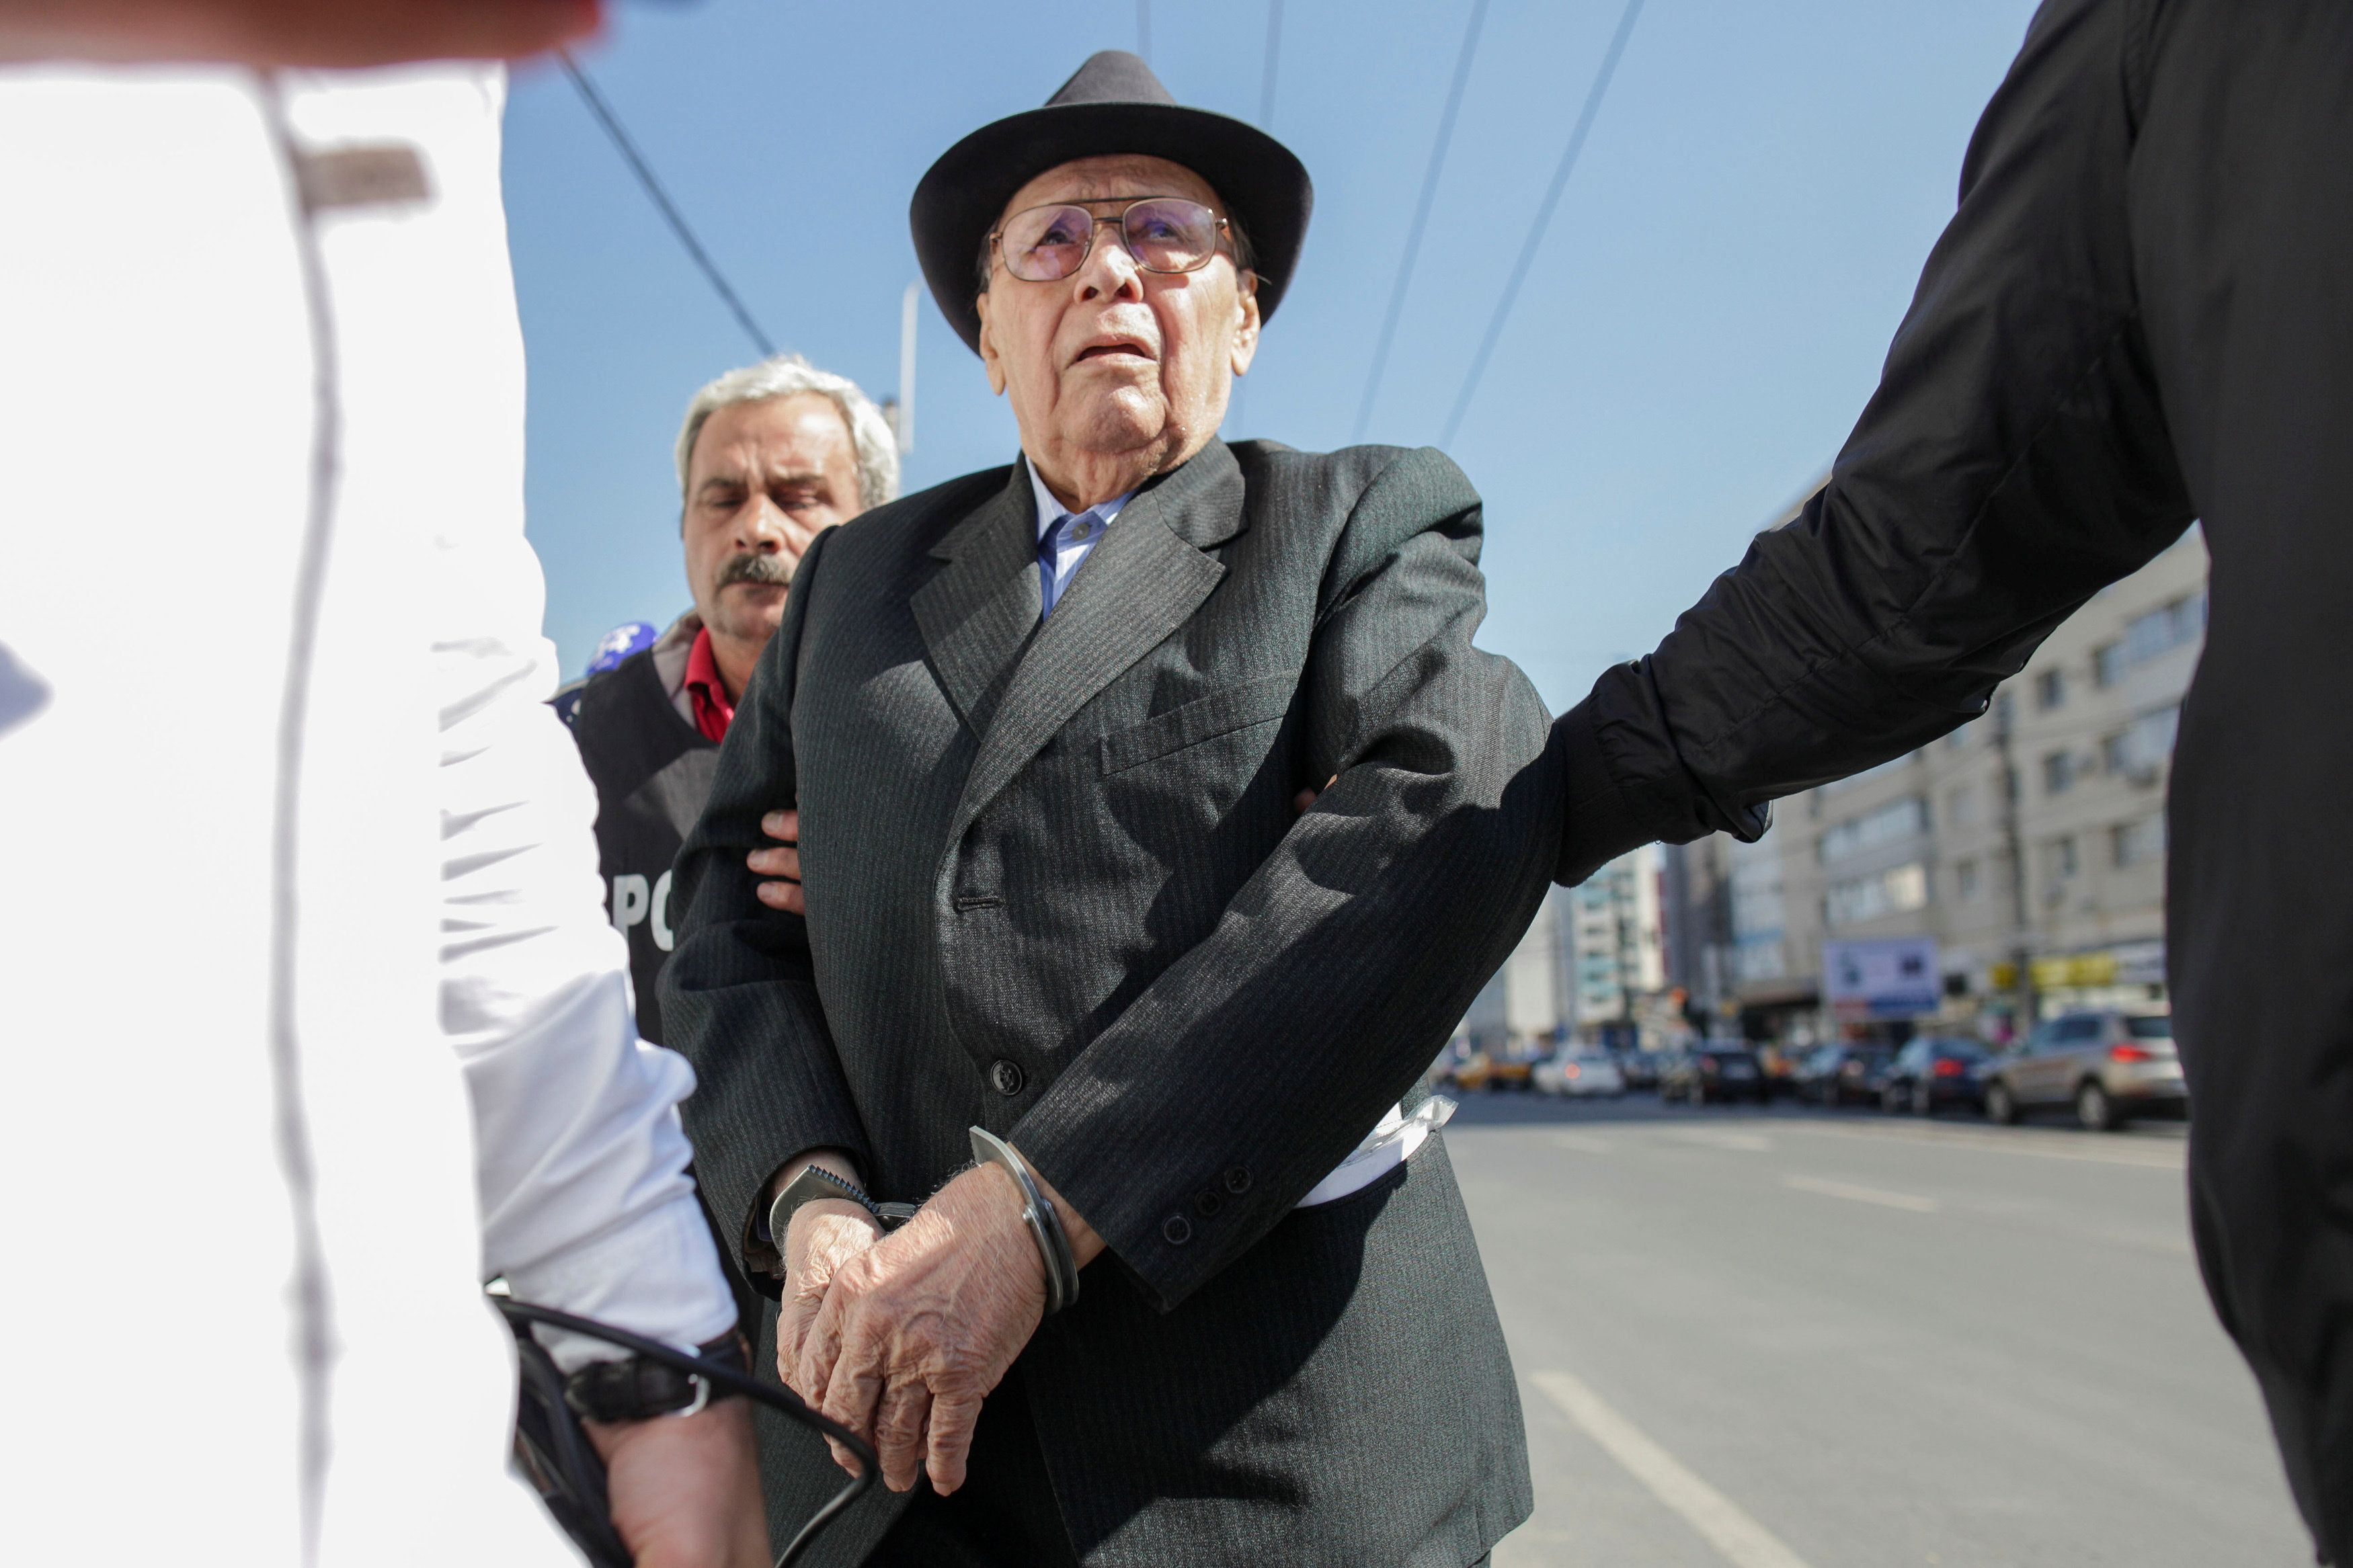 Ioan Ficior, 89, a Romanian communist-era labour prison commander is escorted by police at the end of his trial in Bucharest, Romania, March 29, 2017. Inquam Photos/Liviu Florin Albei via REUTERS ATTENTION EDITORS - THIS IMAGE WAS PROVIDED BY A THIRD PARTY. EDITORIAL USE ONLY. ROMANIA OUT. NO COMMERCIAL OR EDITORIAL SALES IN ROMANIA.